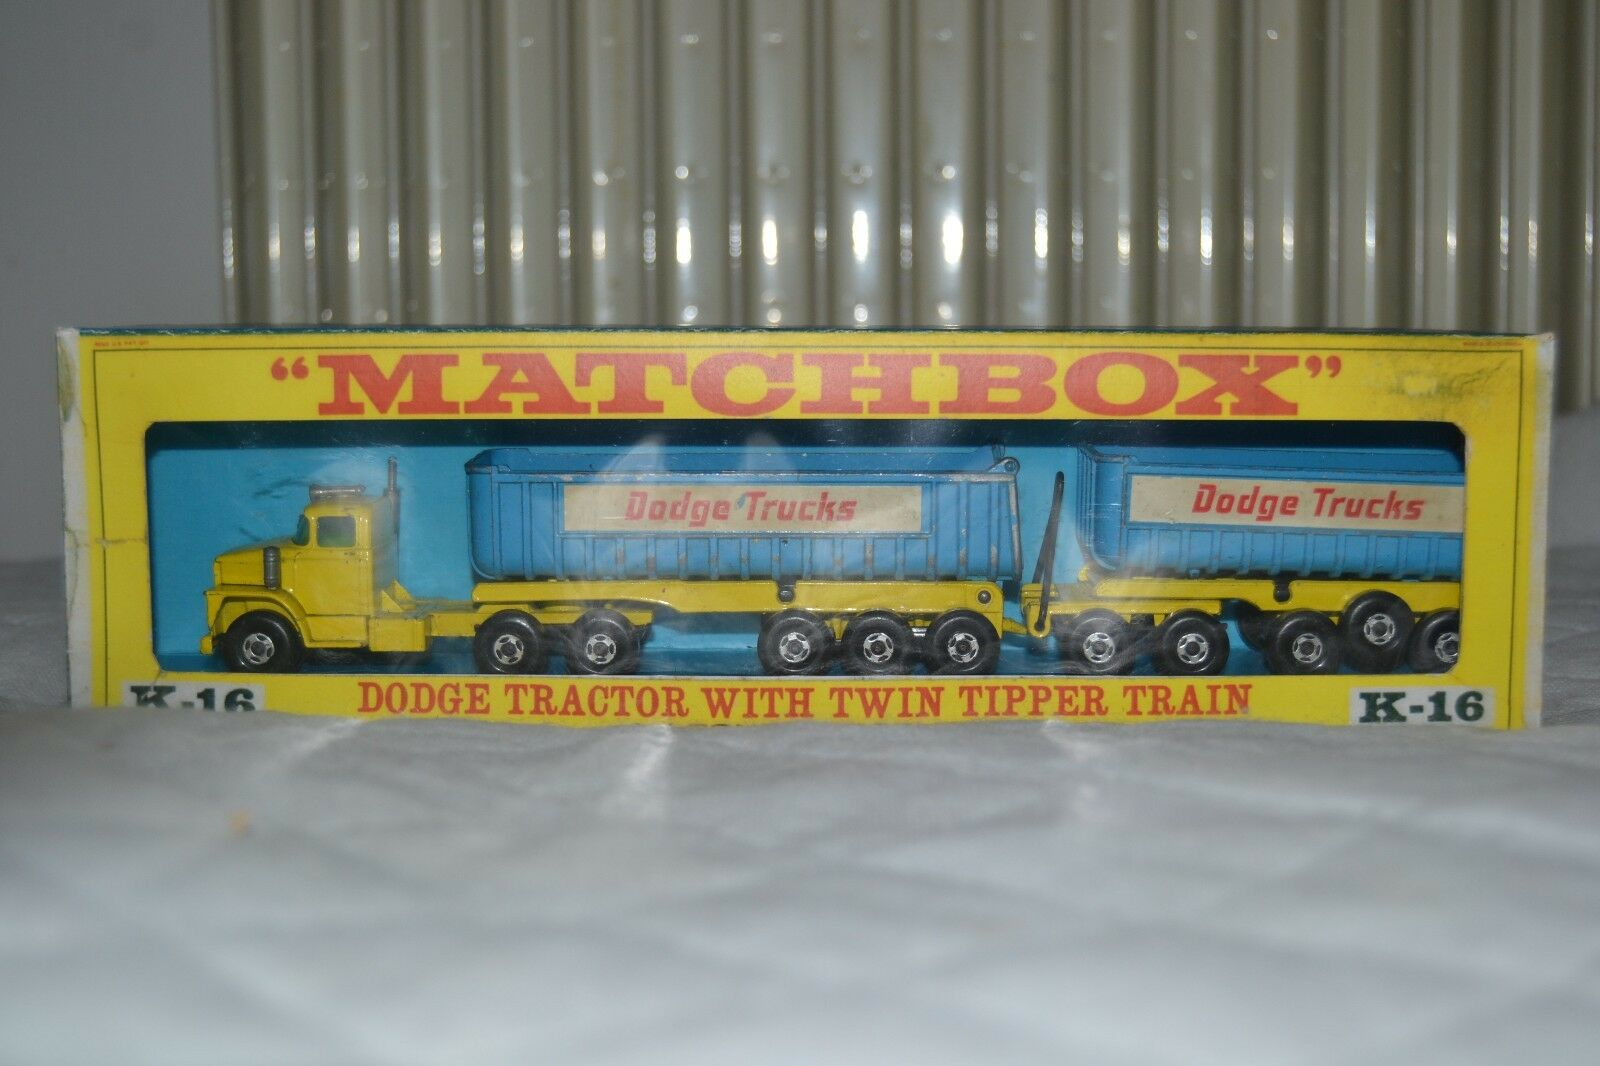 nueva marca Matchbox KingTalla K-16 Dodge Dodge Dodge Trucks Tractor LKW with Twin Tippers Box  compras de moda online